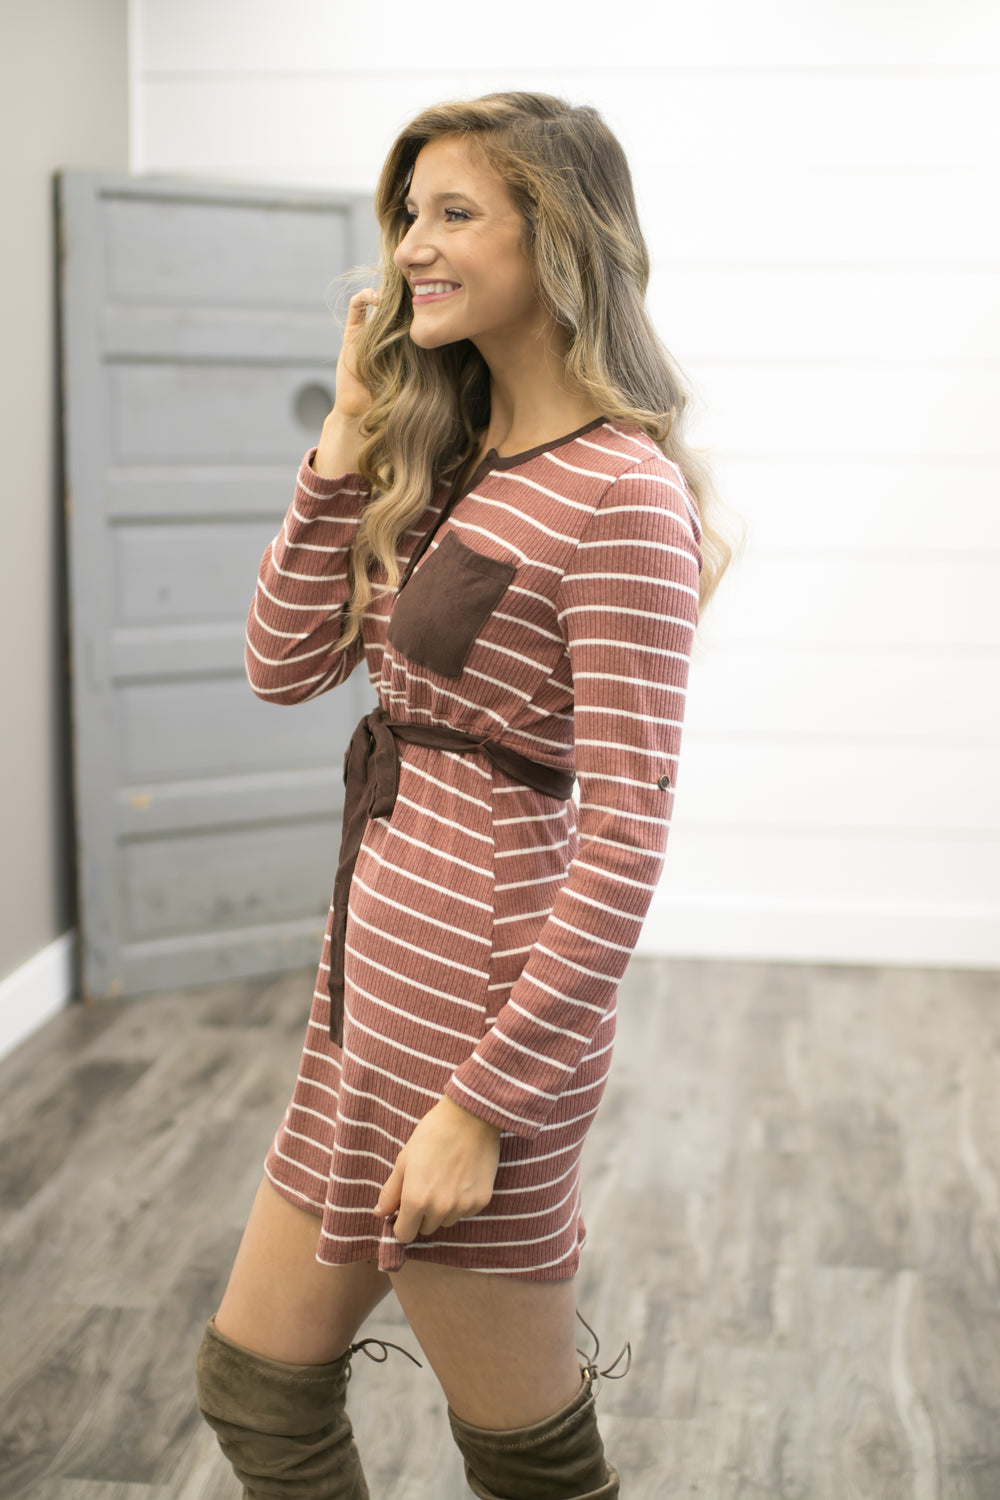 Brooklyn Bridge Striped Dress - Rust